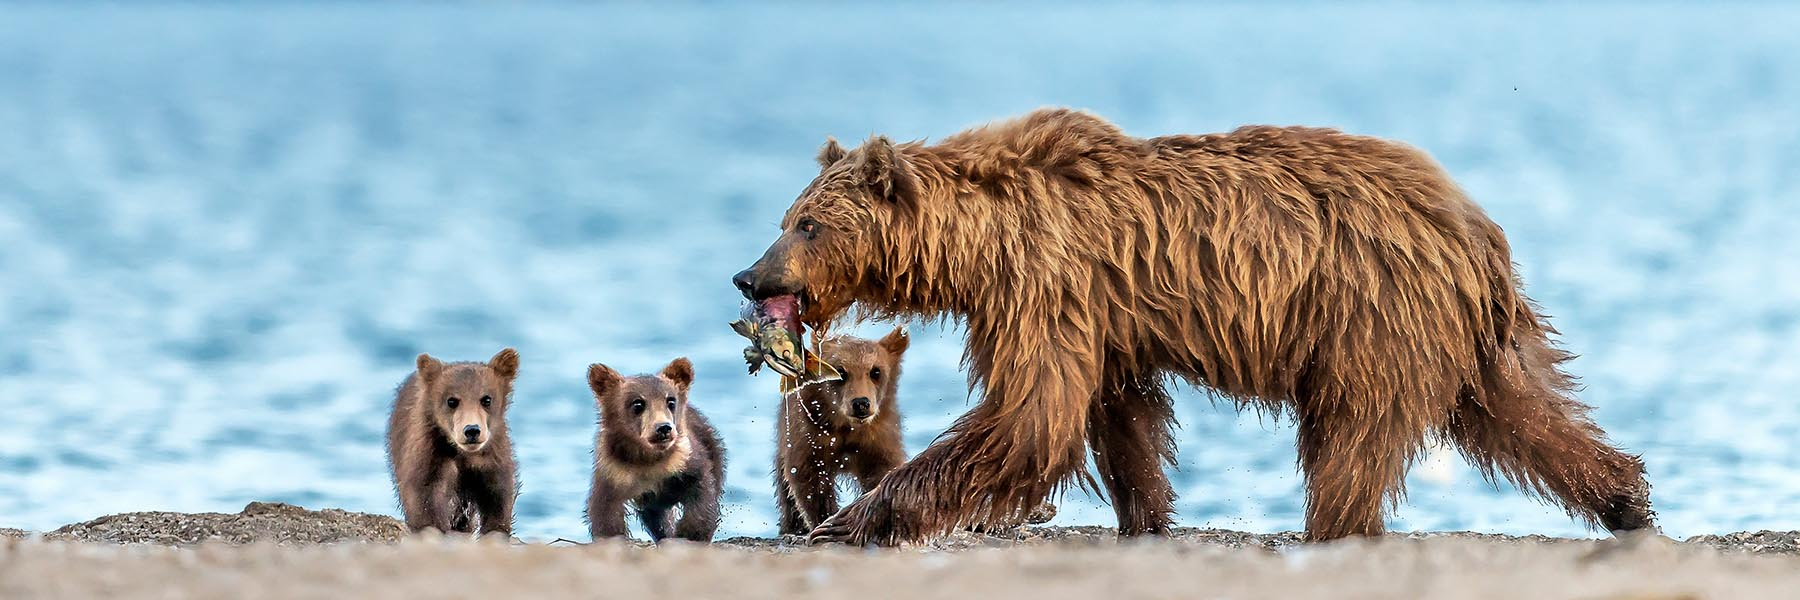 Bear expedition tours